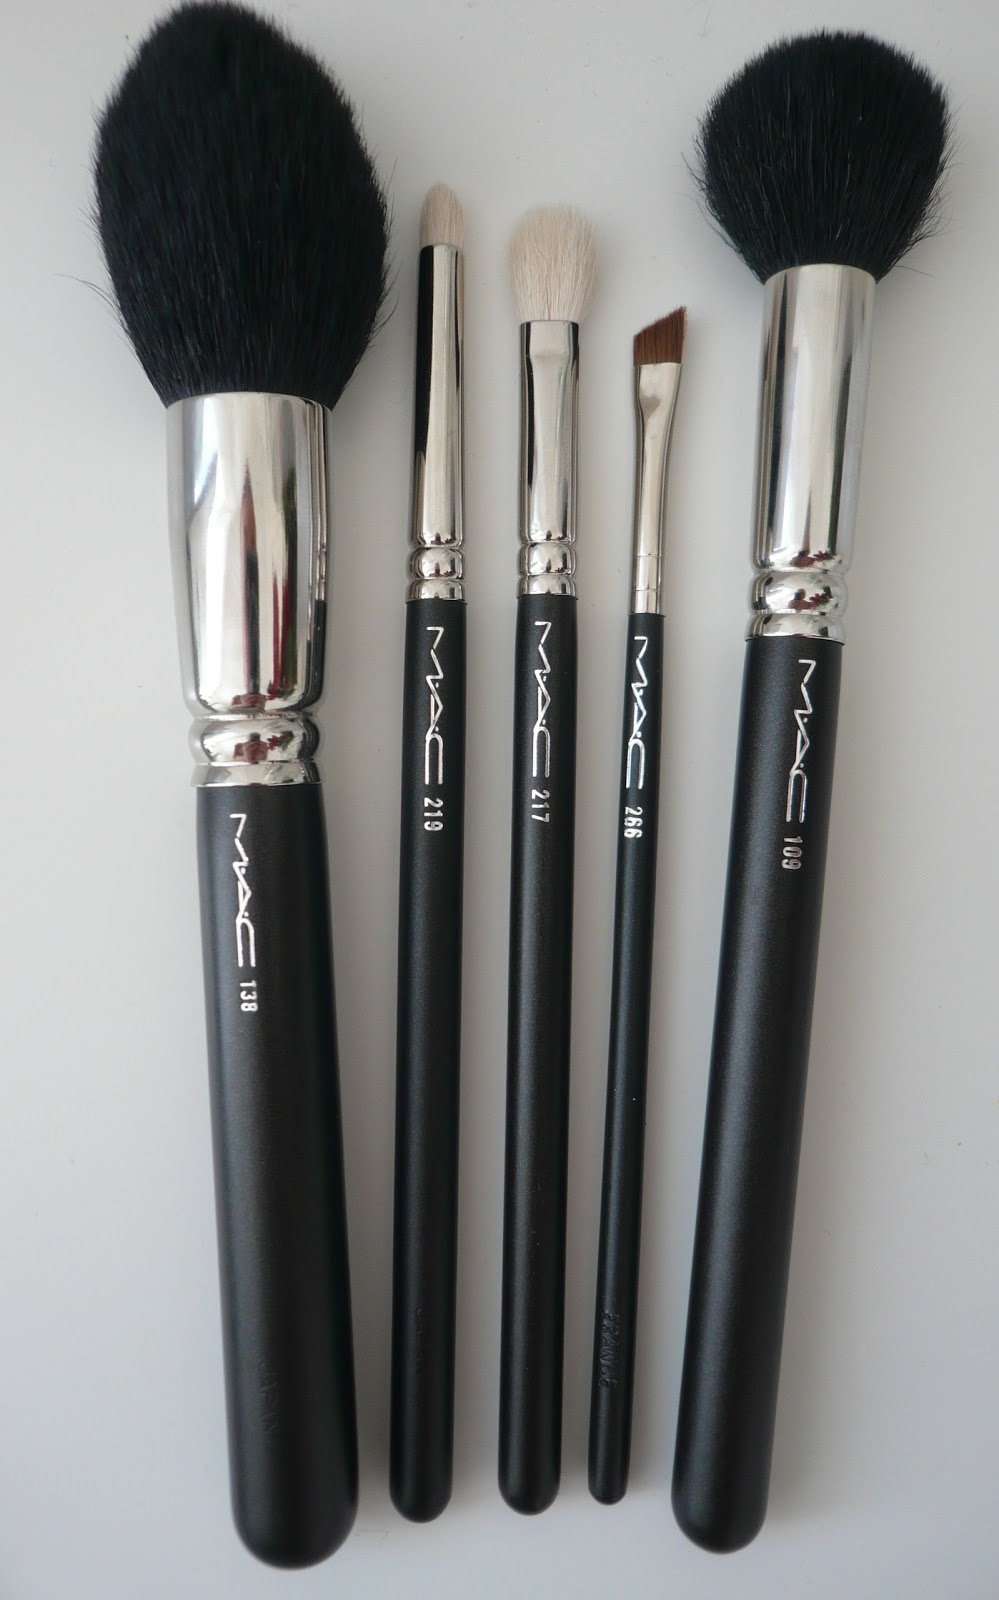 Makeup Brushes And What They Are Used For: Anna6Belle: My Top 5 Must Have Mac Brushes